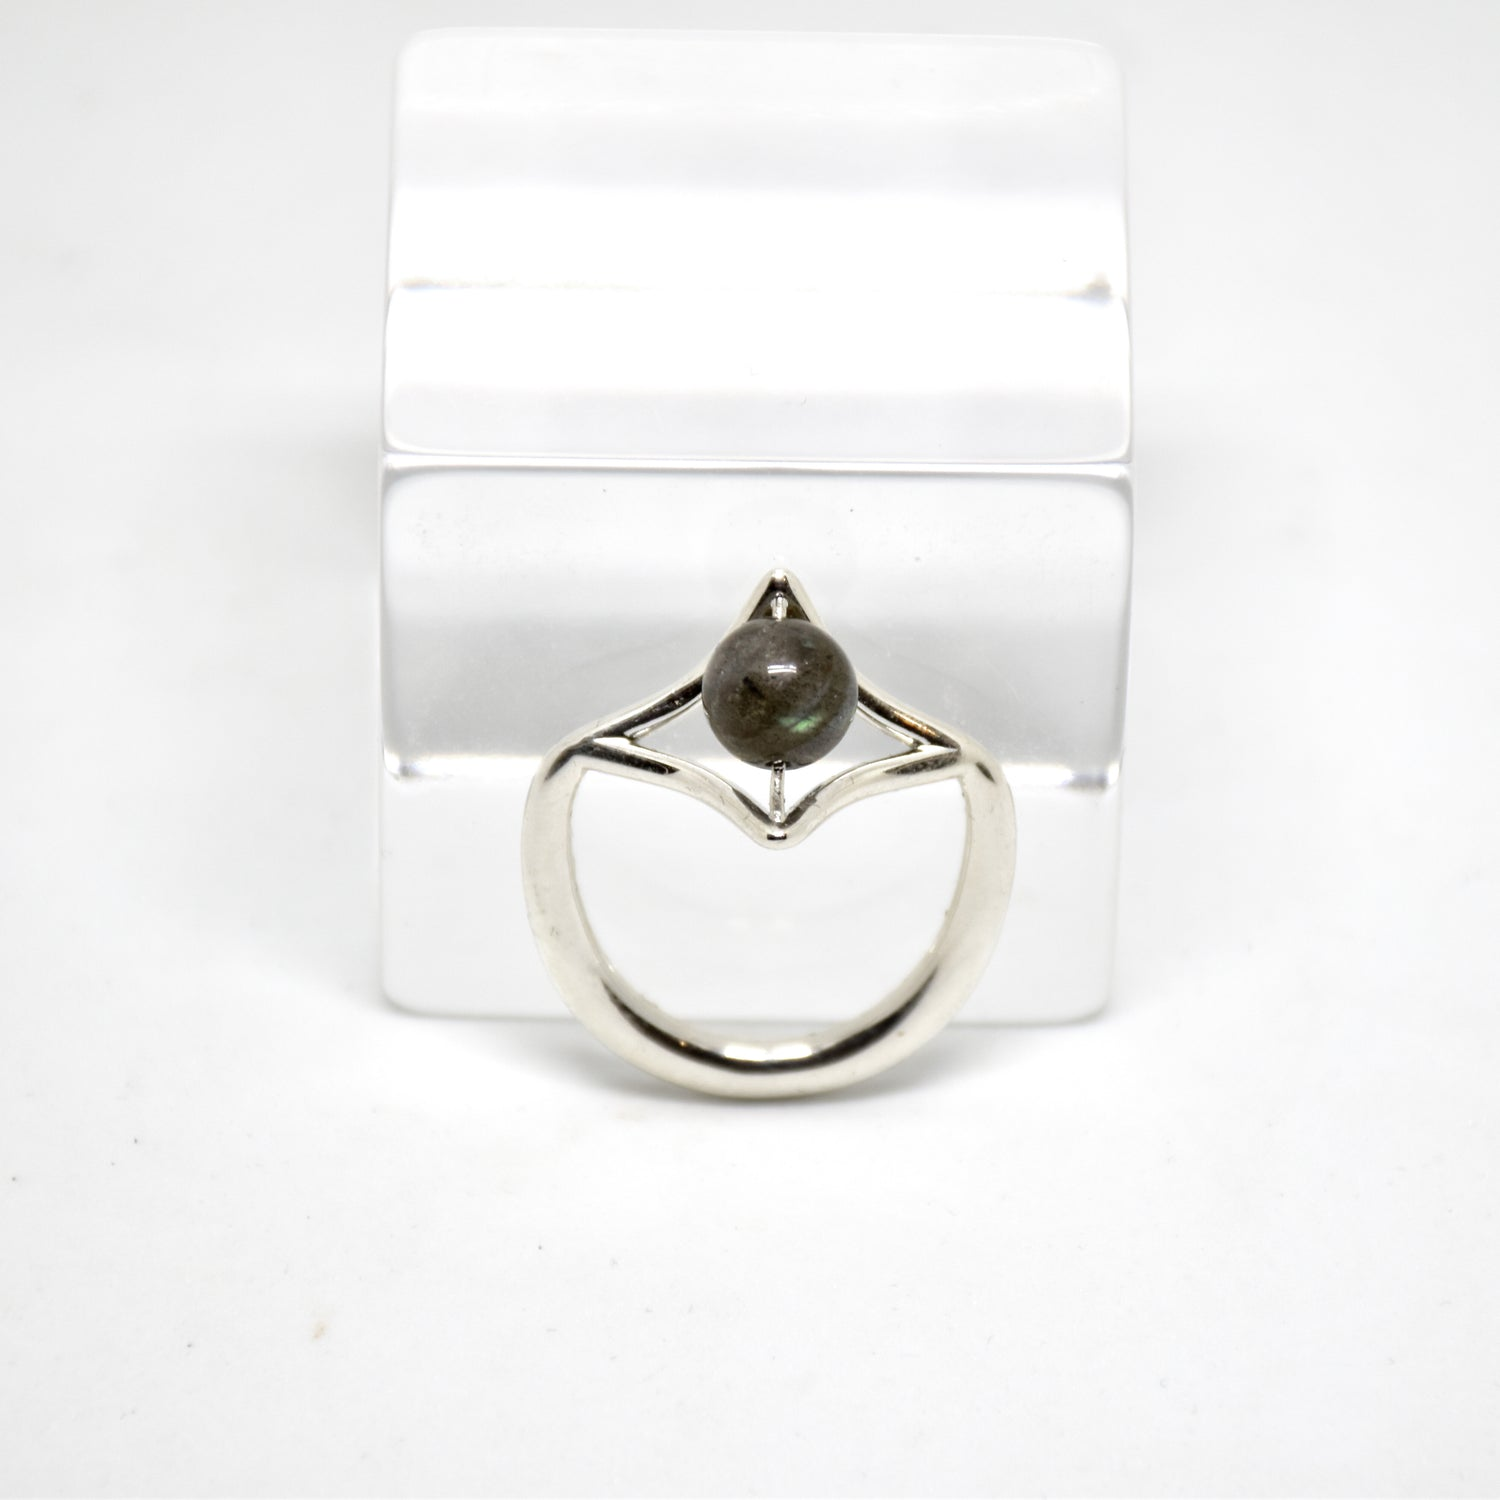 Petal Sterling Silver Ring with Labradorite Stone